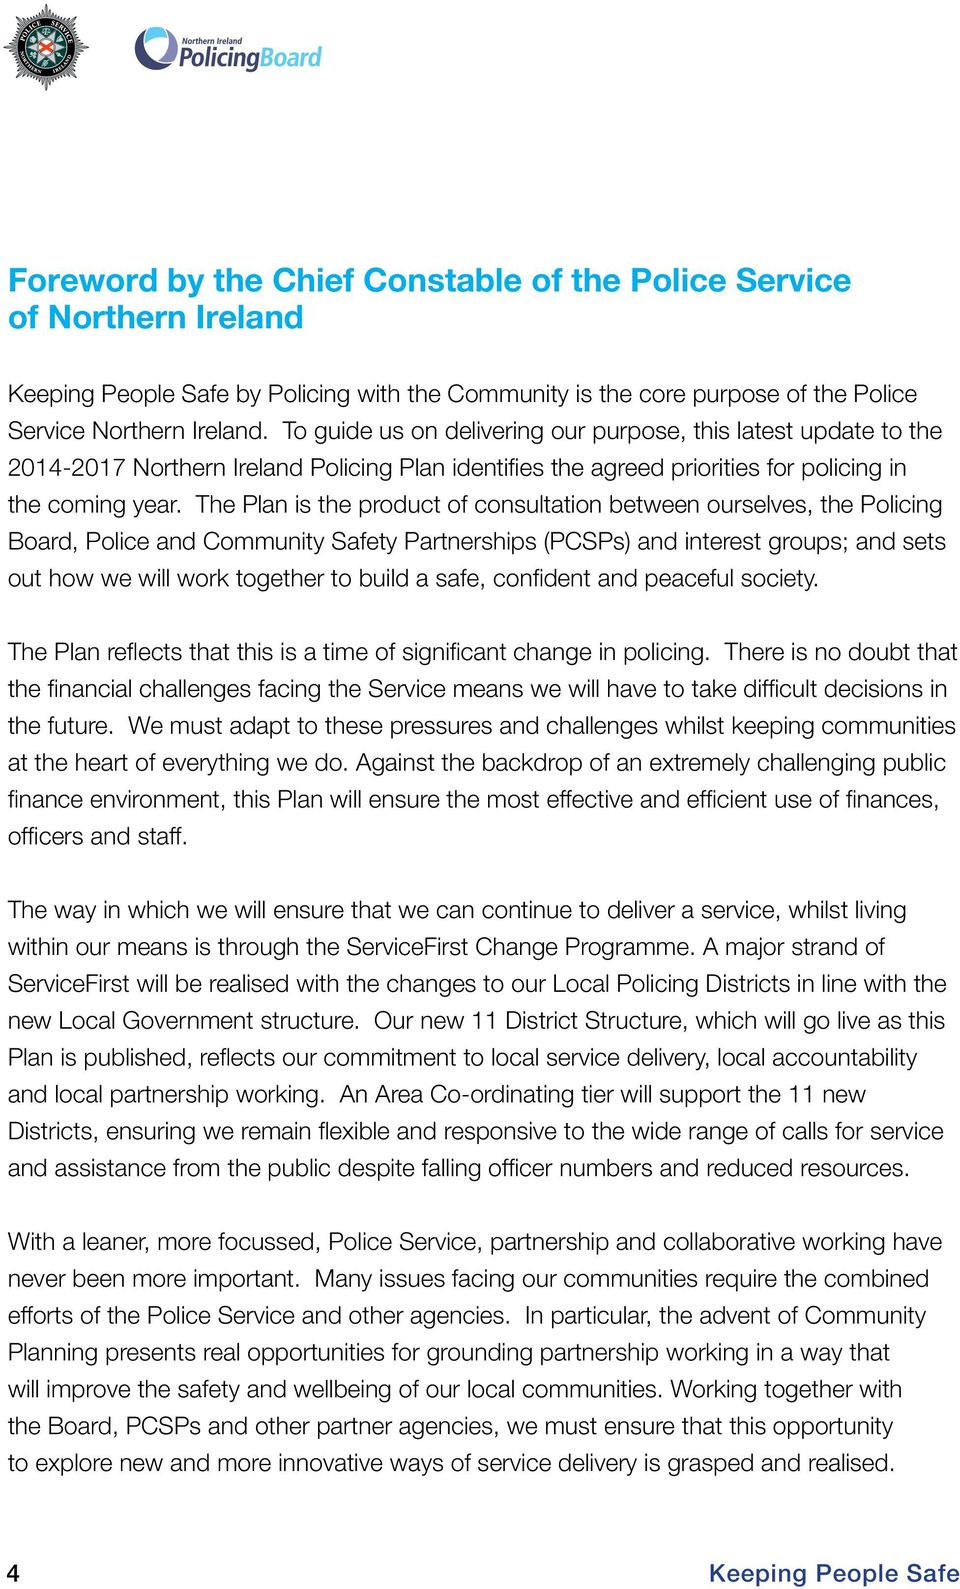 The Plan is the product of consultation between ourselves, the Policing Board, Police and Community Safety Partnerships (PCSPs) and interest groups; and sets out how we will work together to build a